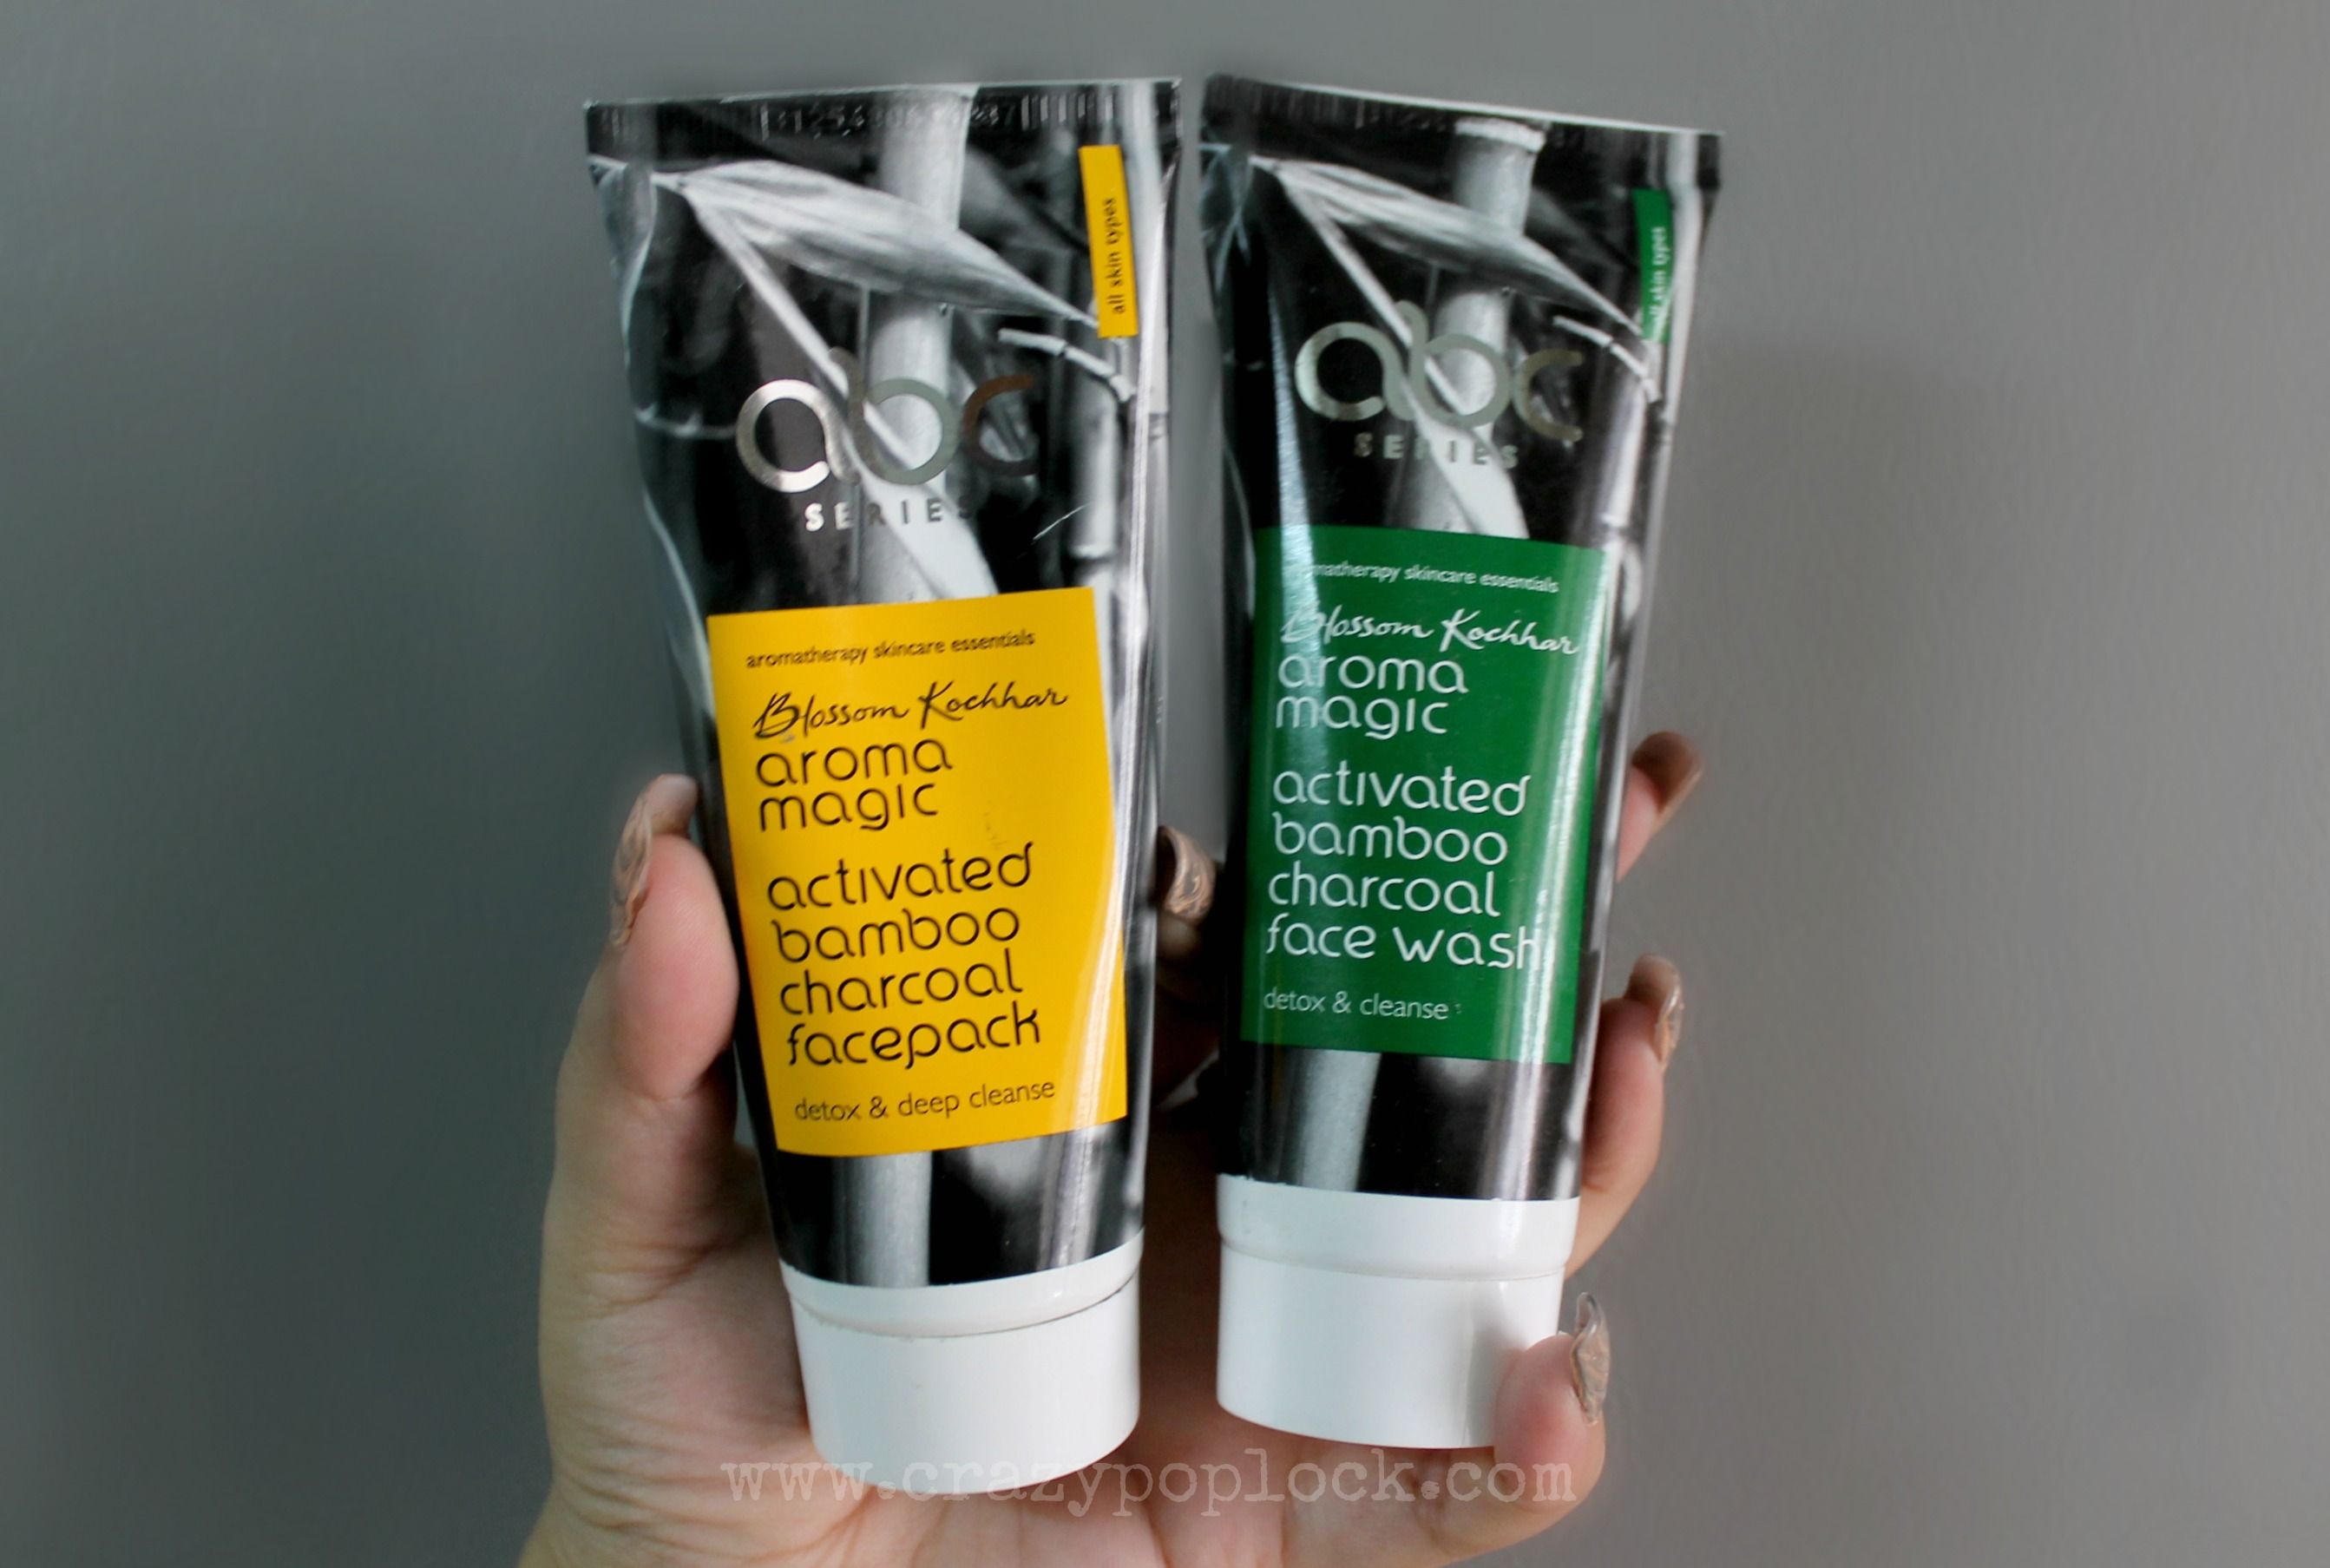 Gridiron reccomend Magic facial cleanser